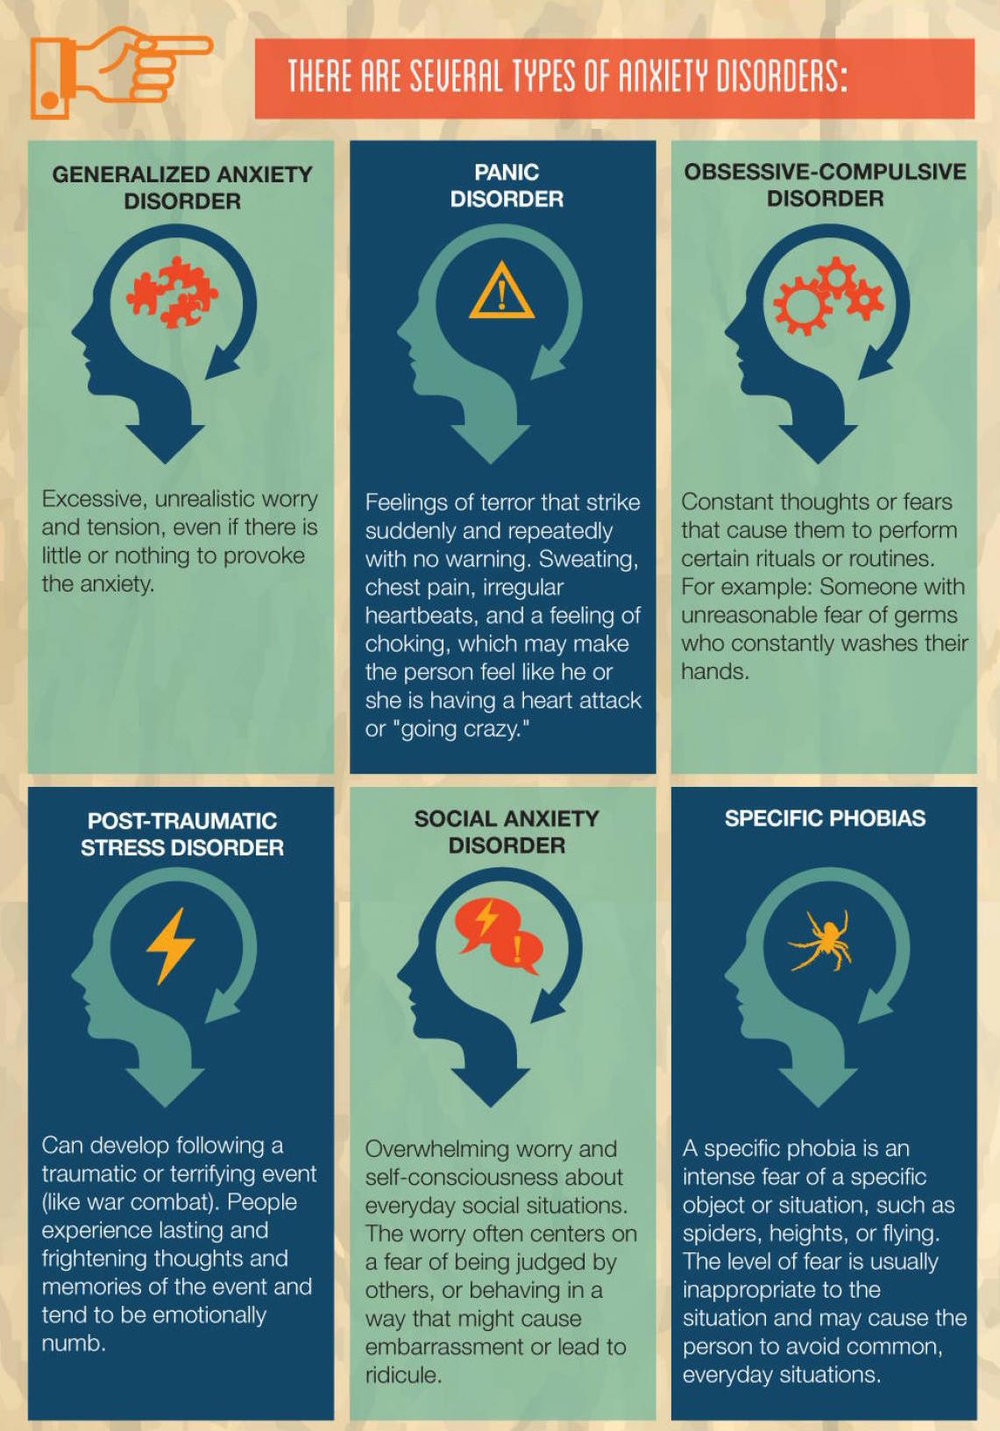 https://www.gmeded.com/gme-info-graphics/what-are-anxiety-disorders#